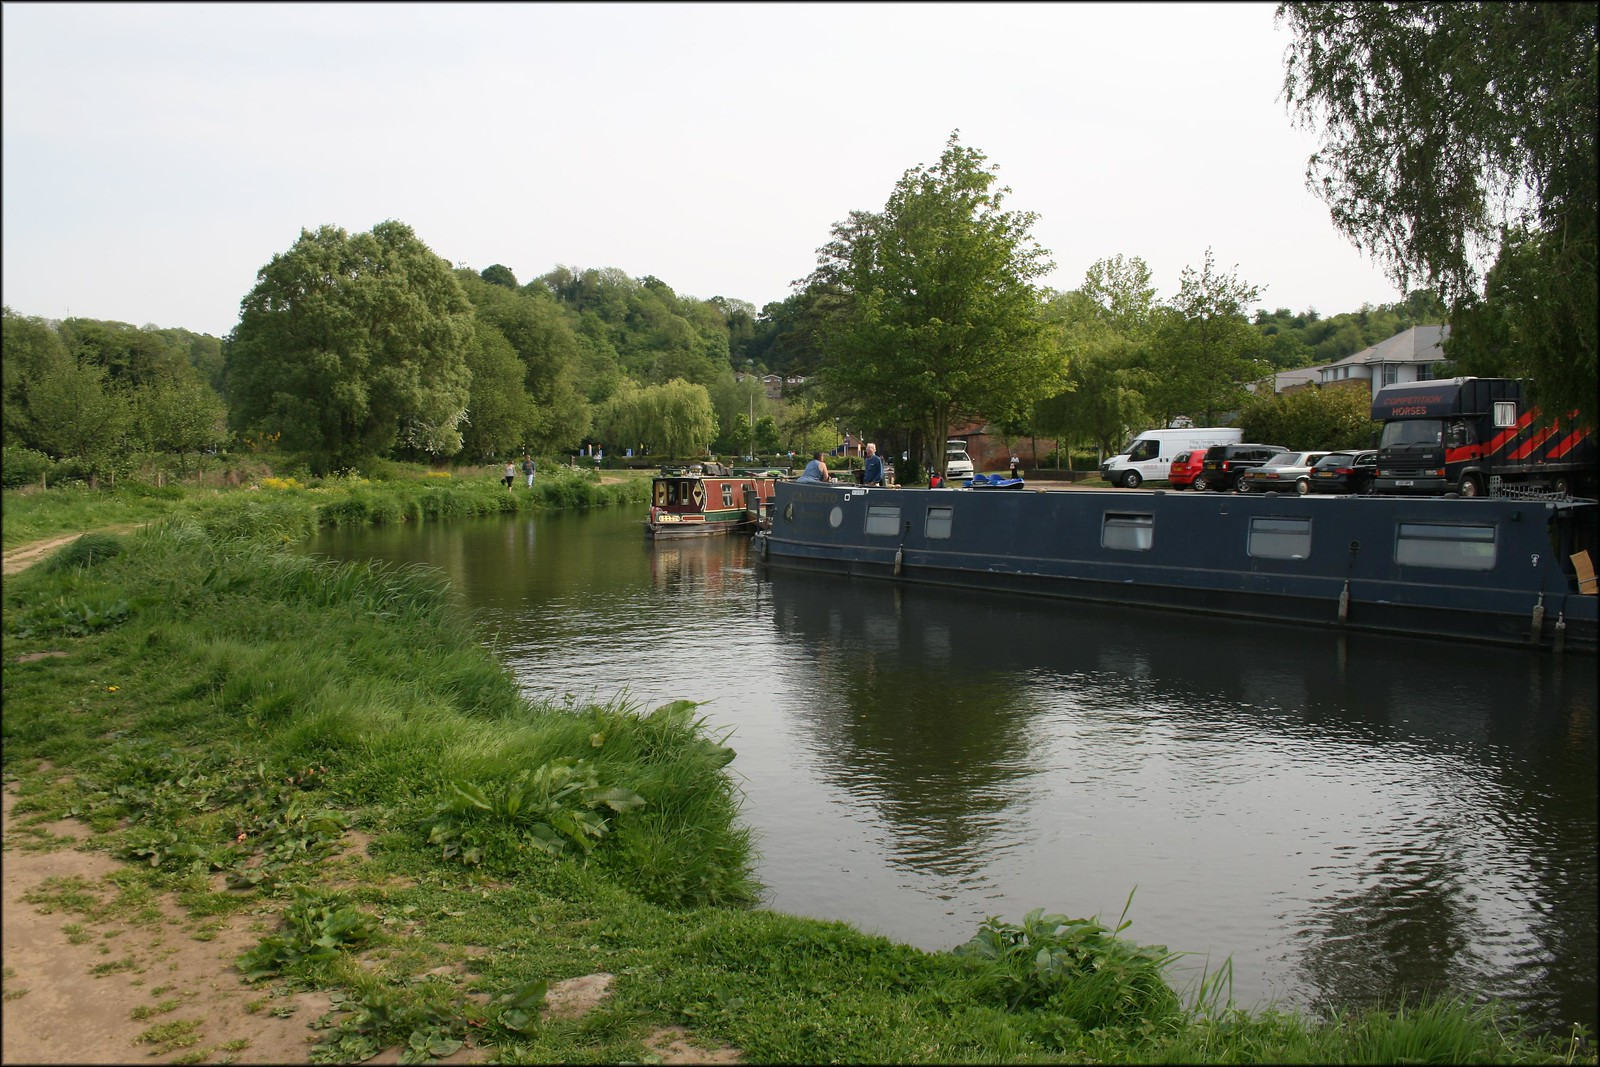 The River Wey at Godalming